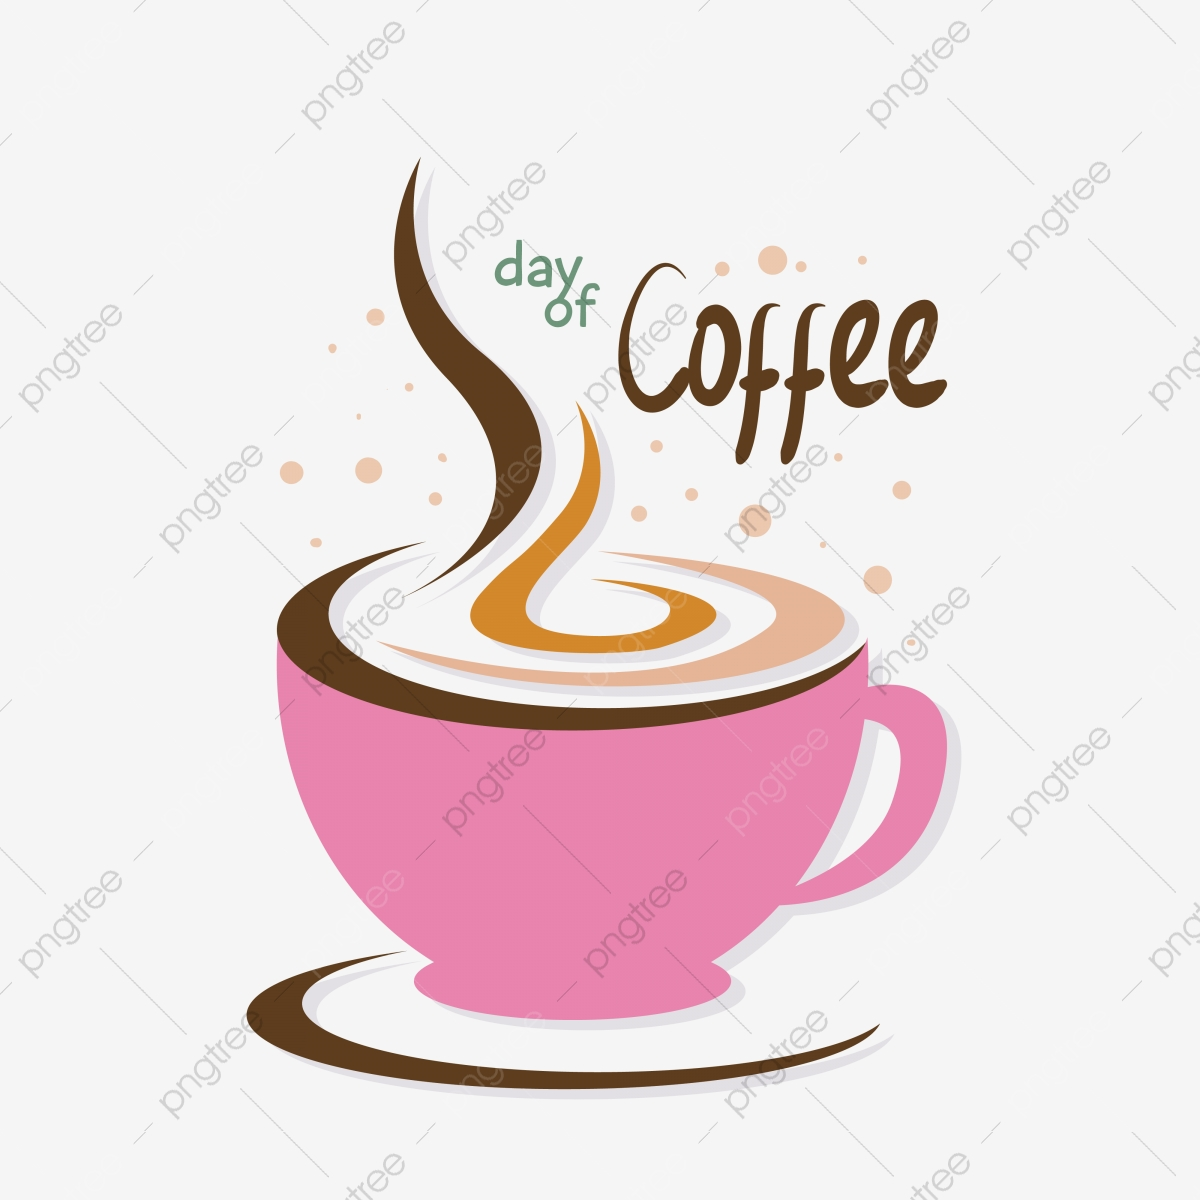 Latte Vector Png Vector Psd And Clipart With Transparent Background For Free Download Pngtree